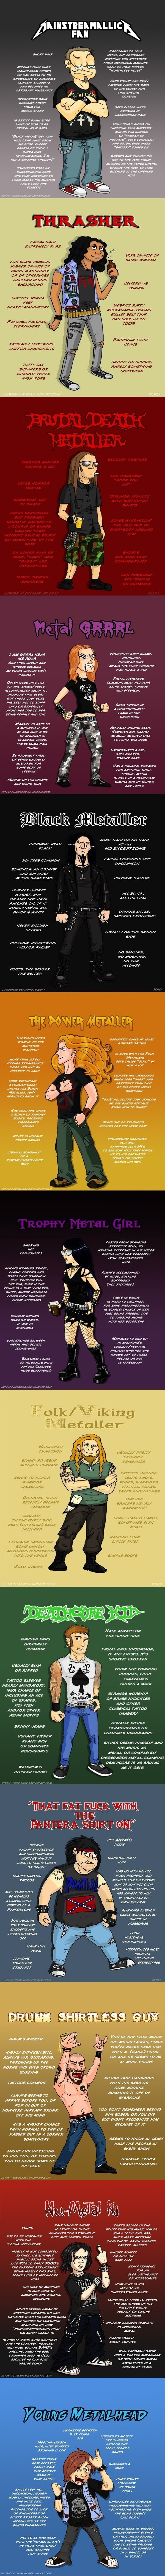 Guide to different Metal head stereotypes